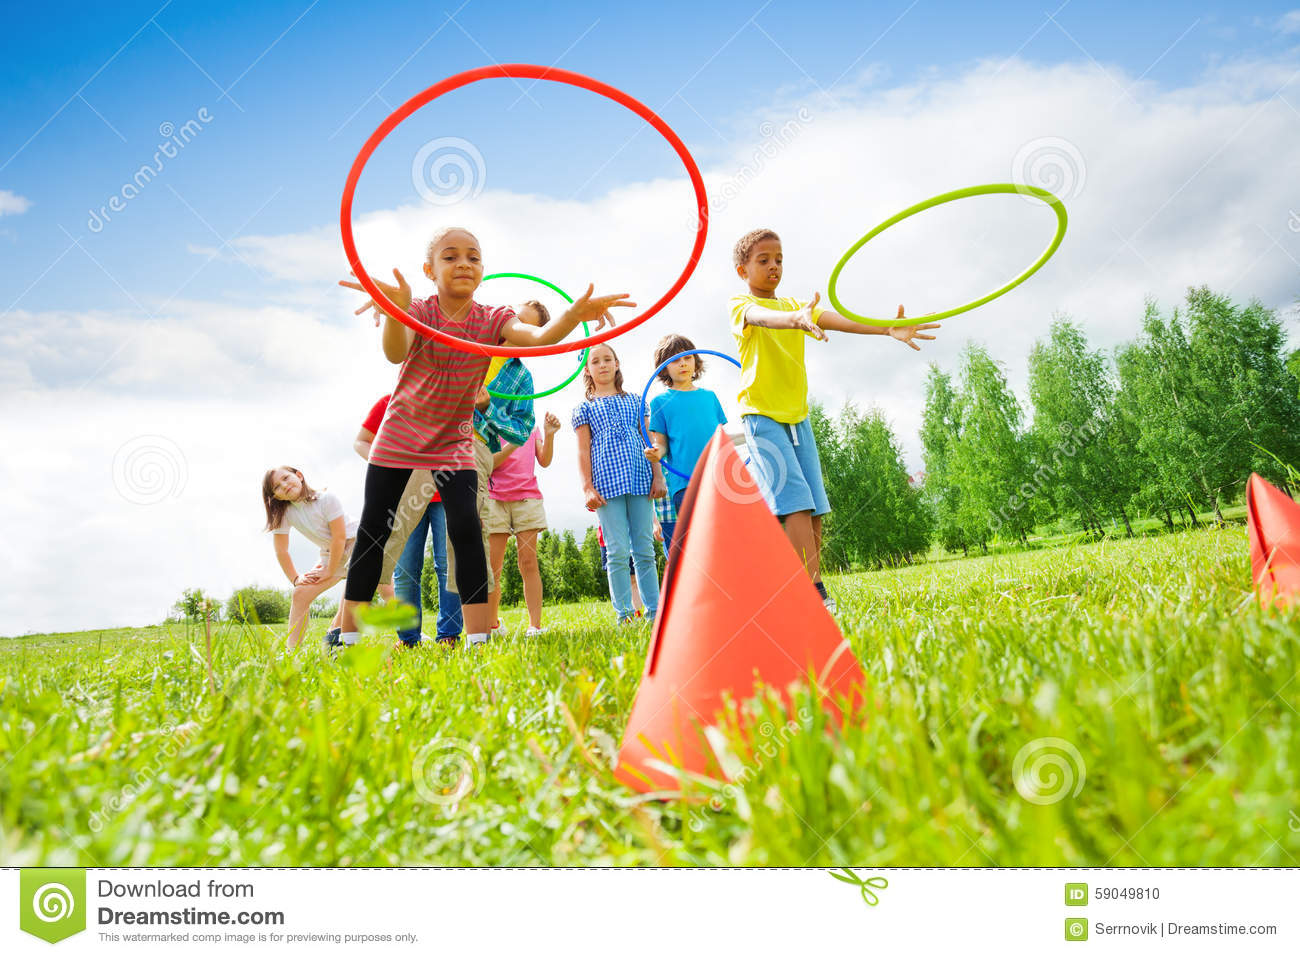 Kids Throw Colorful Hoops On Cones While Competing Stock